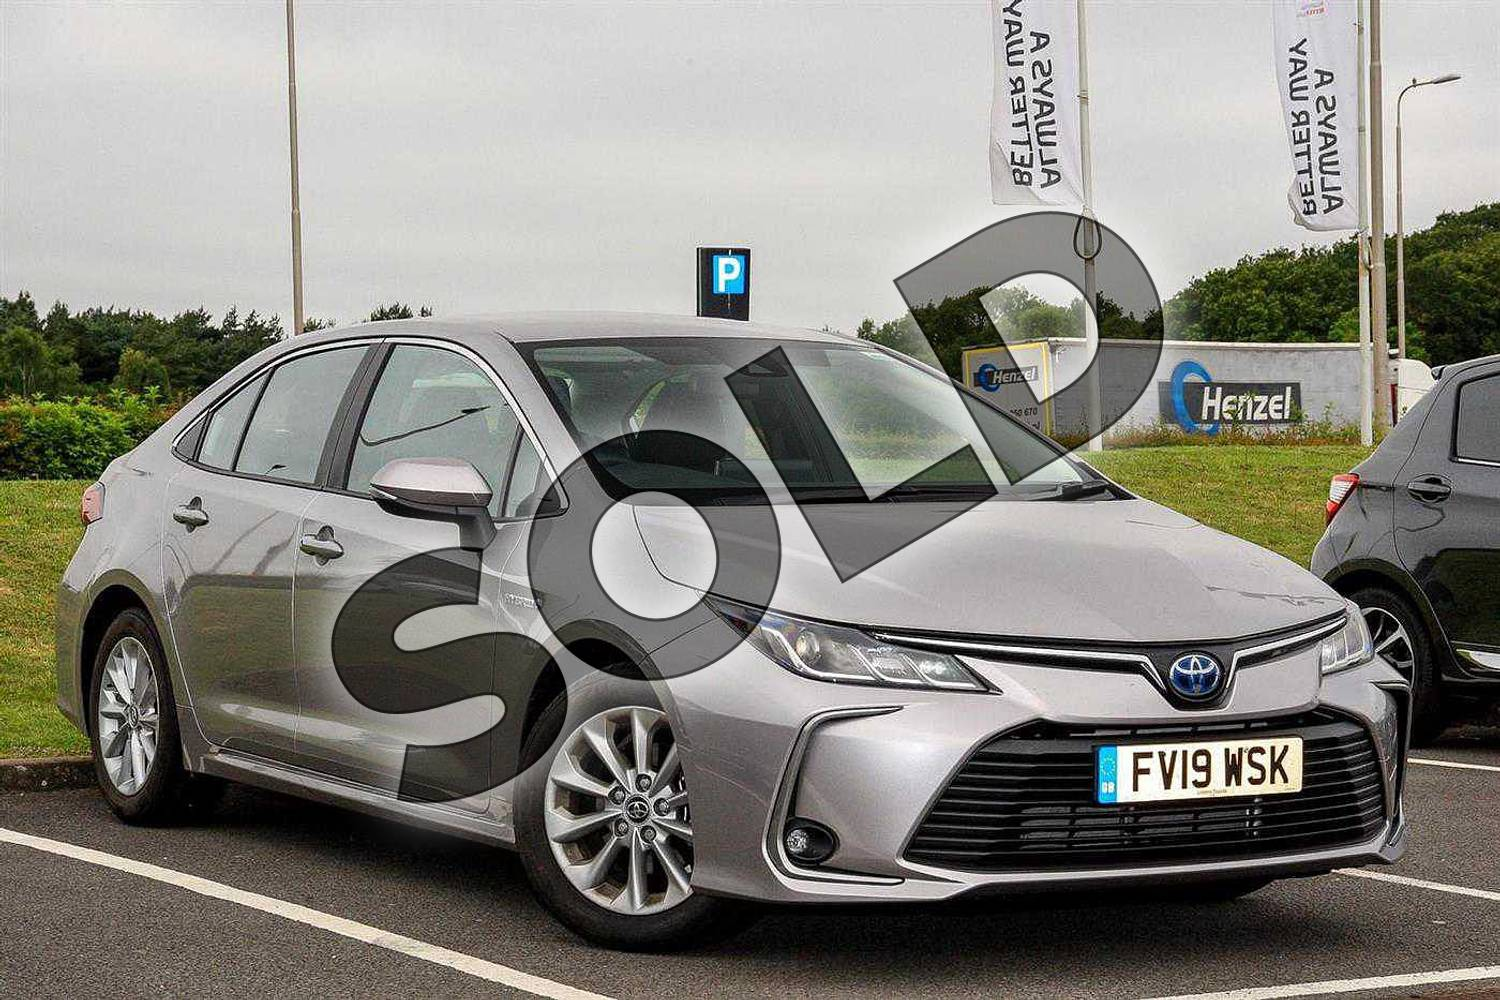 2019 Toyota Corolla Saloon 1.8 VVT-i Hybrid Icon 4dr CVT in Silver at Listers Toyota Lincoln